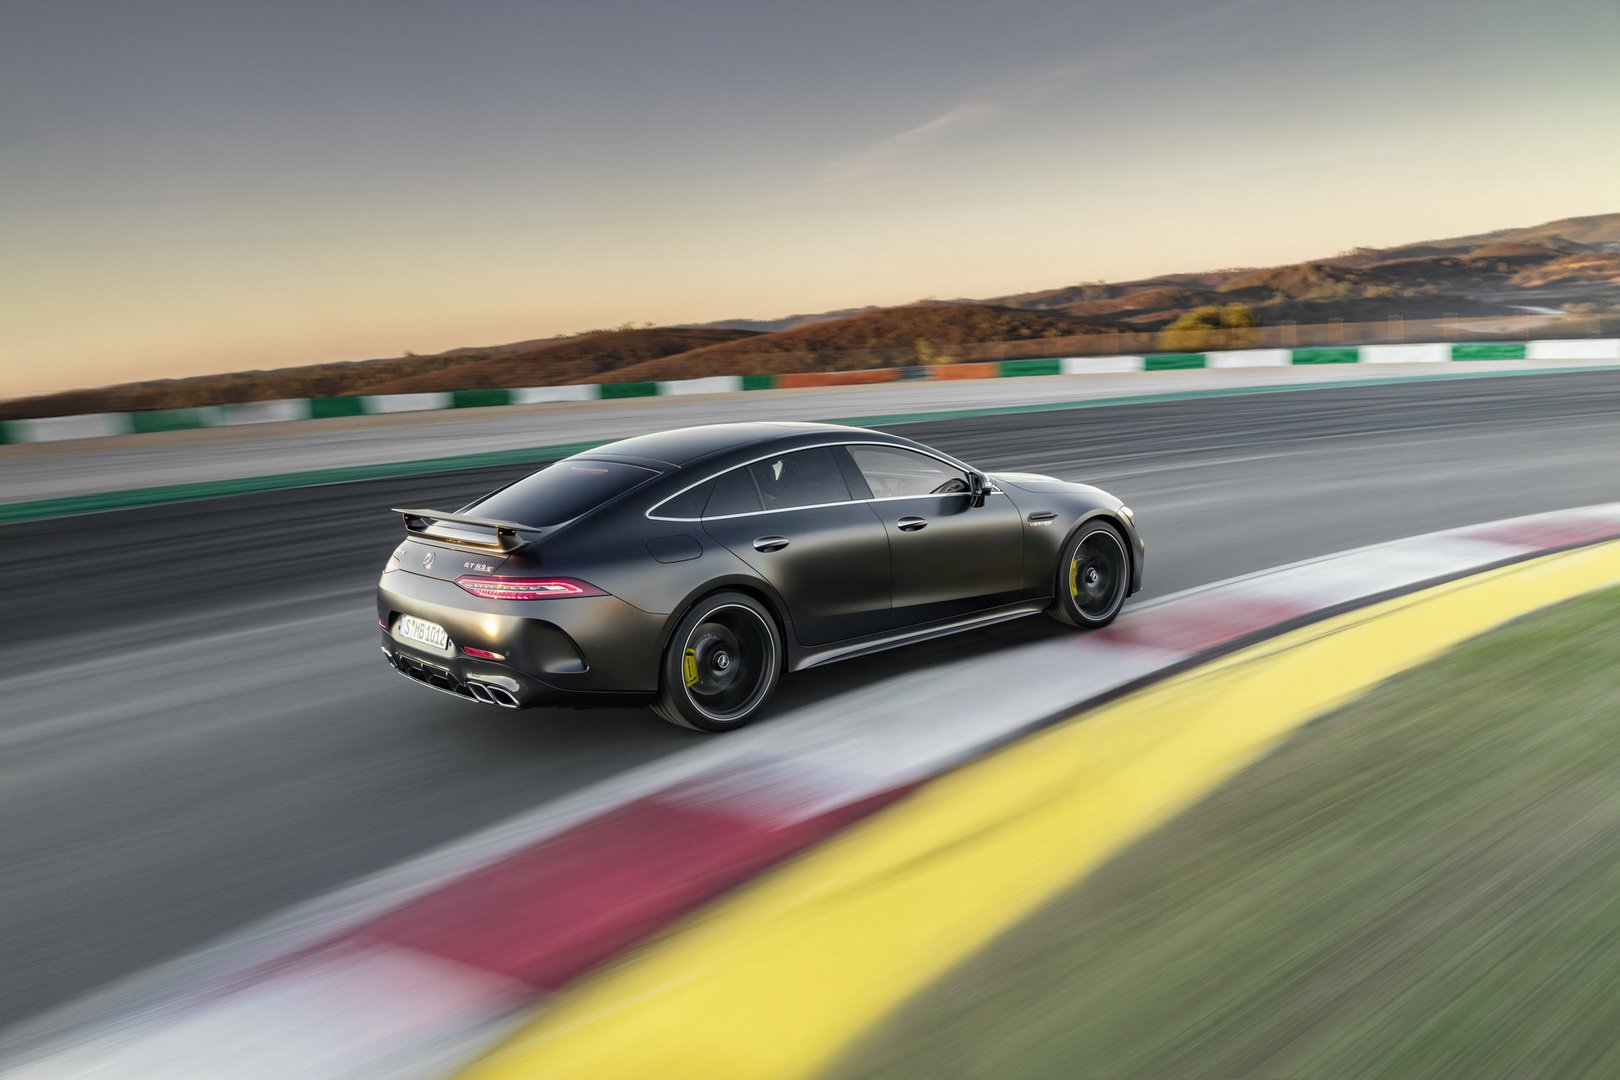 mercedes-amg-gt-4-door-coupe-lap-rap-4.jpg